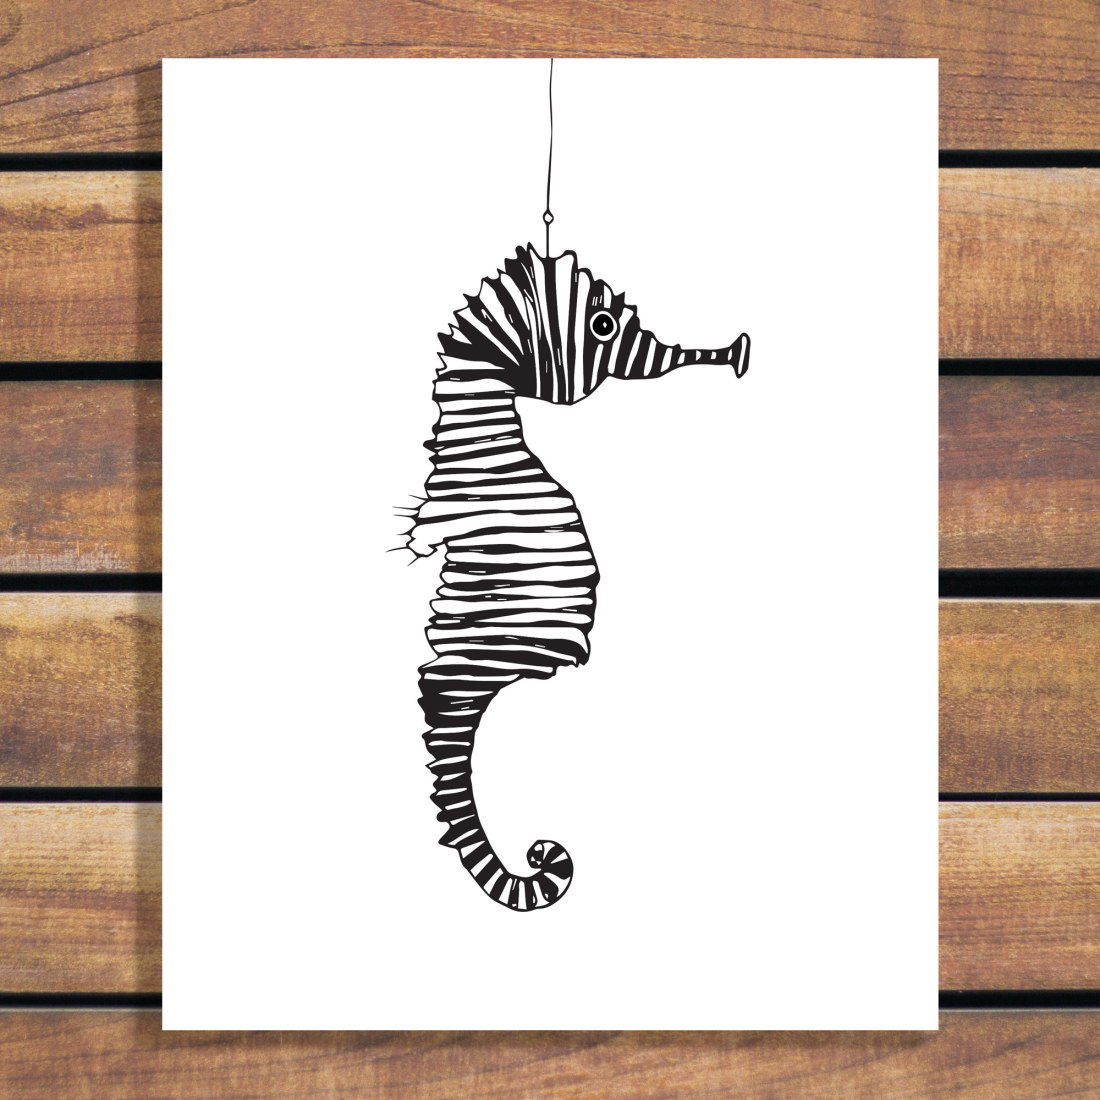 Suspended Seahorse Illustration Art Poster Print - Custom Wall Art by changing colours and size of artwork